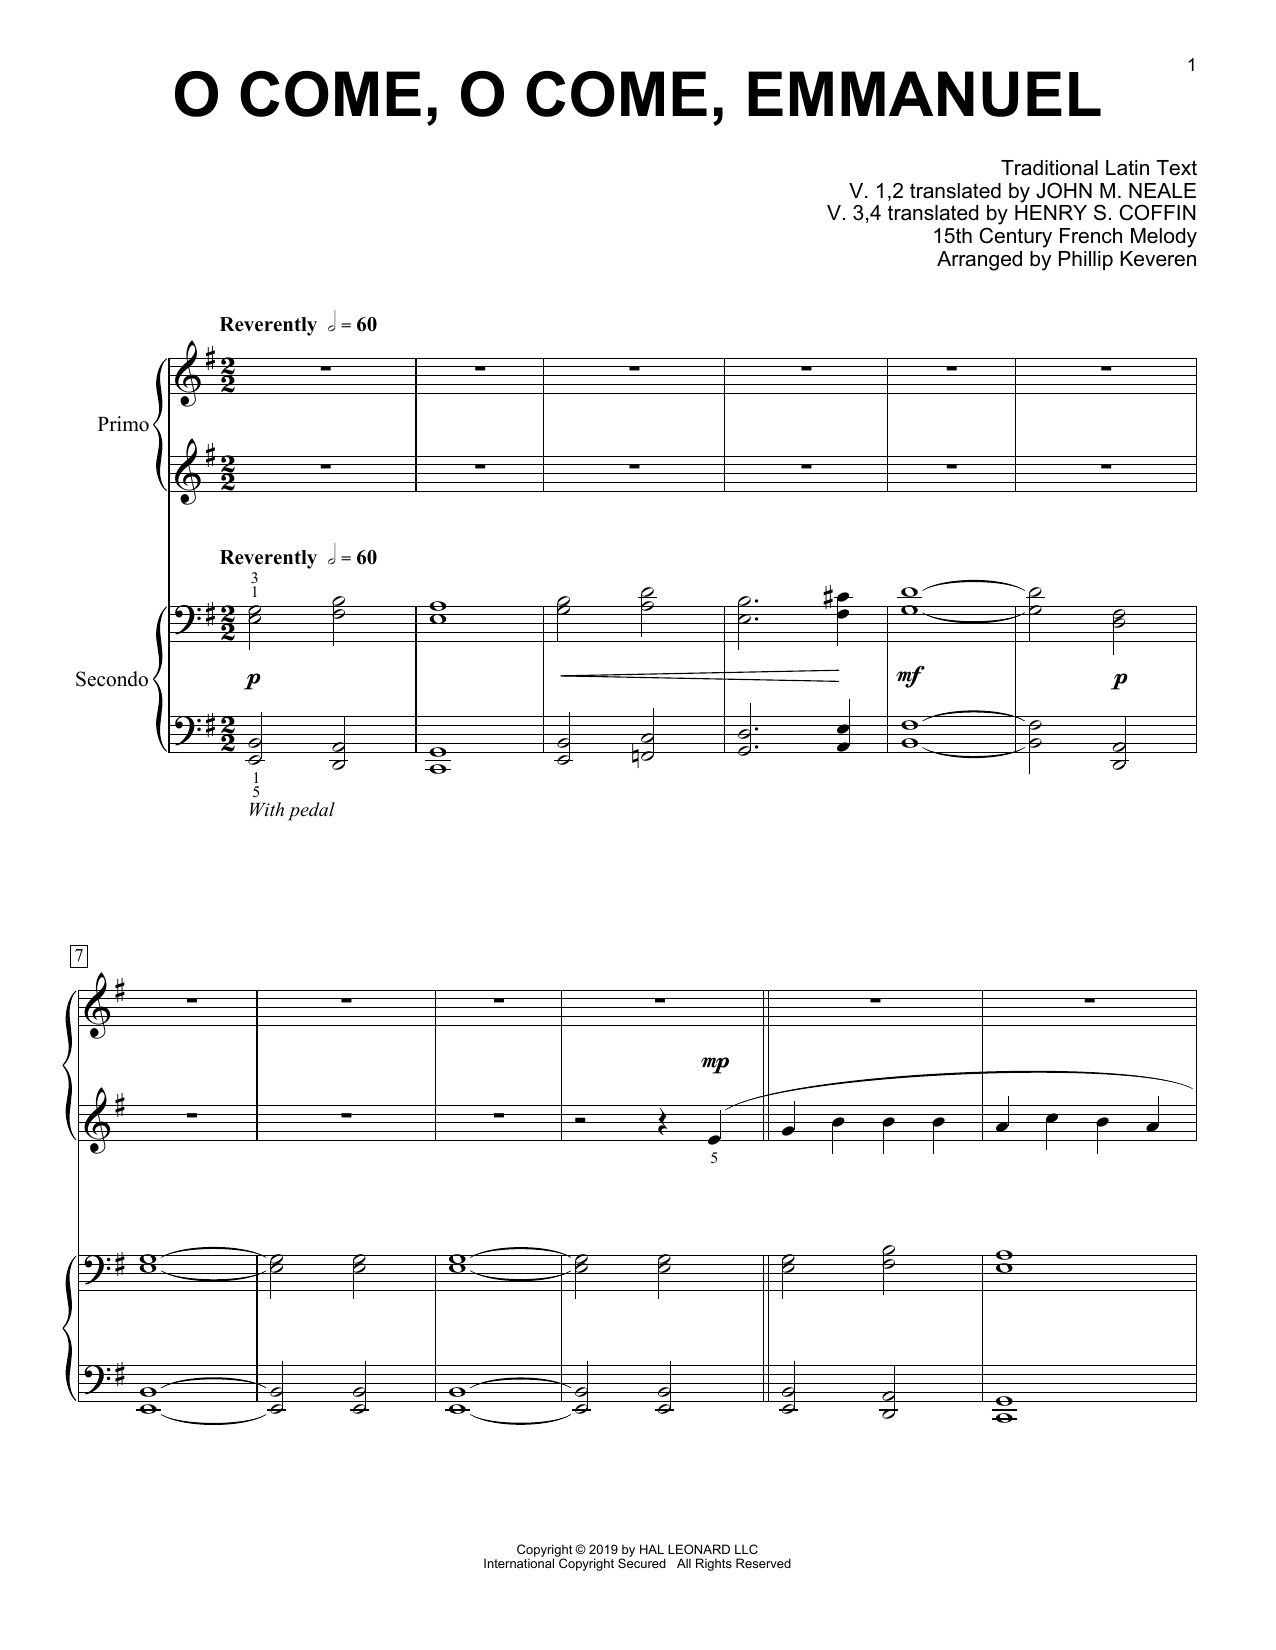 Download 15th Century French Melody 'O Come, O Come, Emmanuel (arr. Phillip Keveren)' Digital Sheet Music Notes & Chords and start playing in minutes